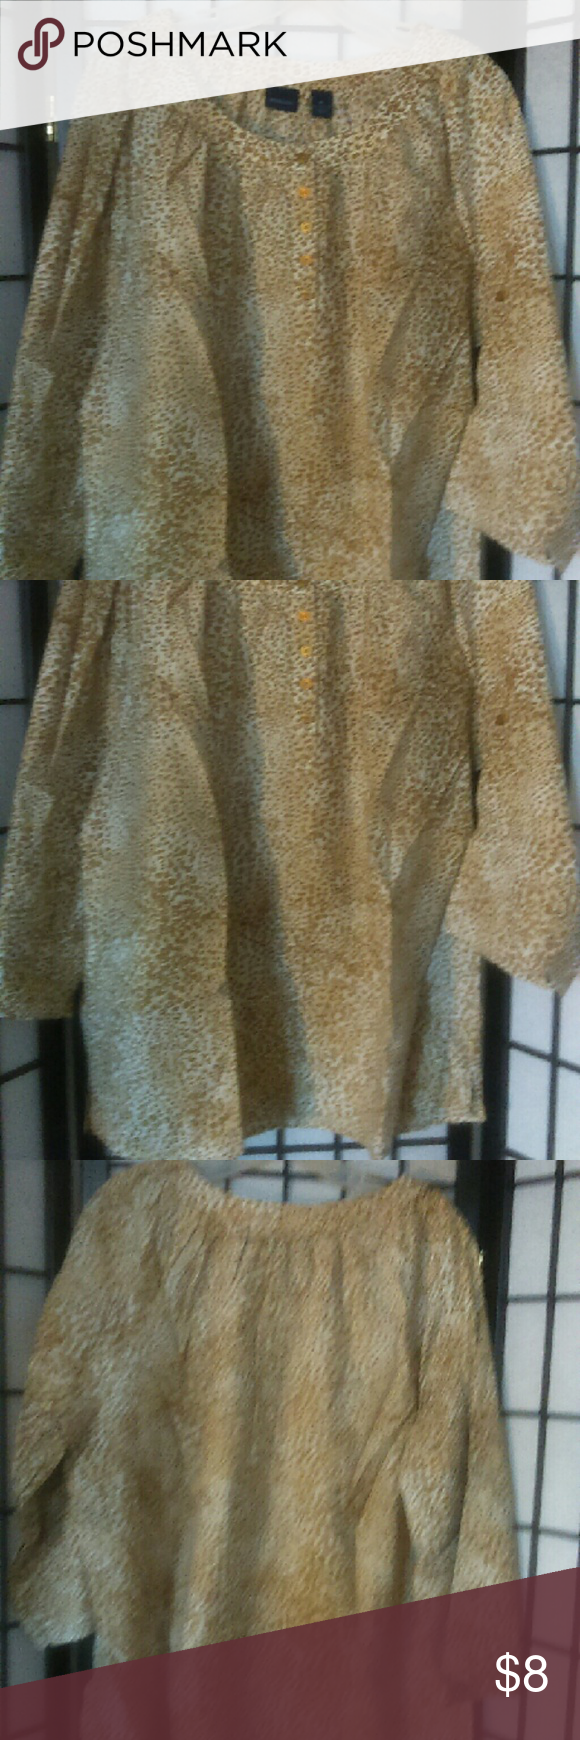 Blouse Leopard print Westbound Tops Blouses